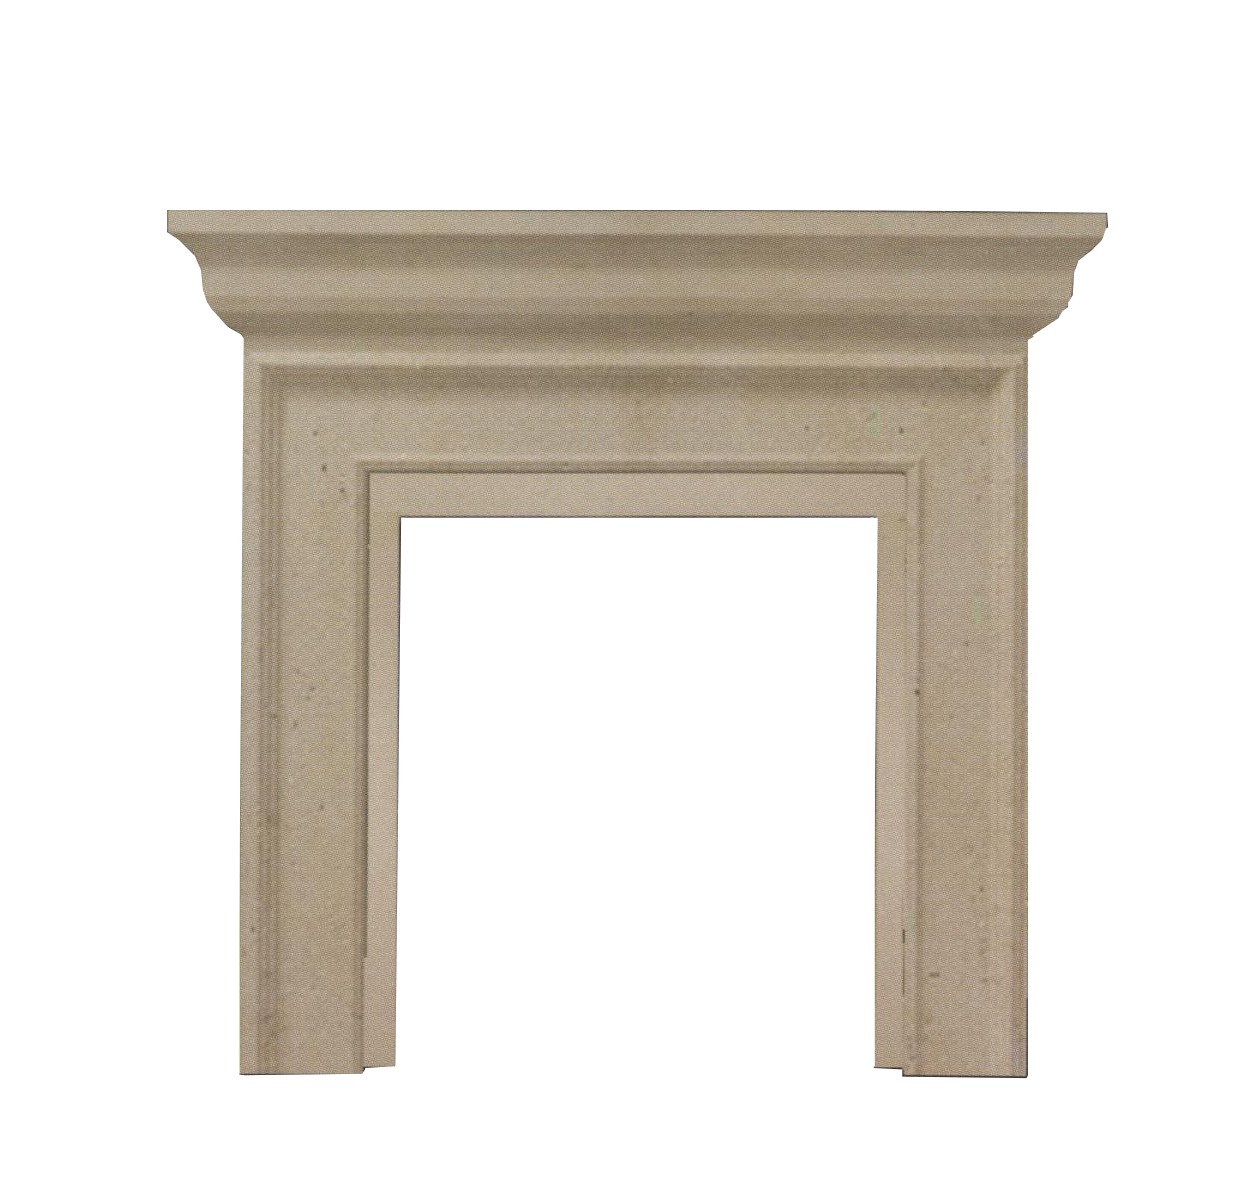 Fireplace clipart fireplace mantle. Mantels anna sale clearance